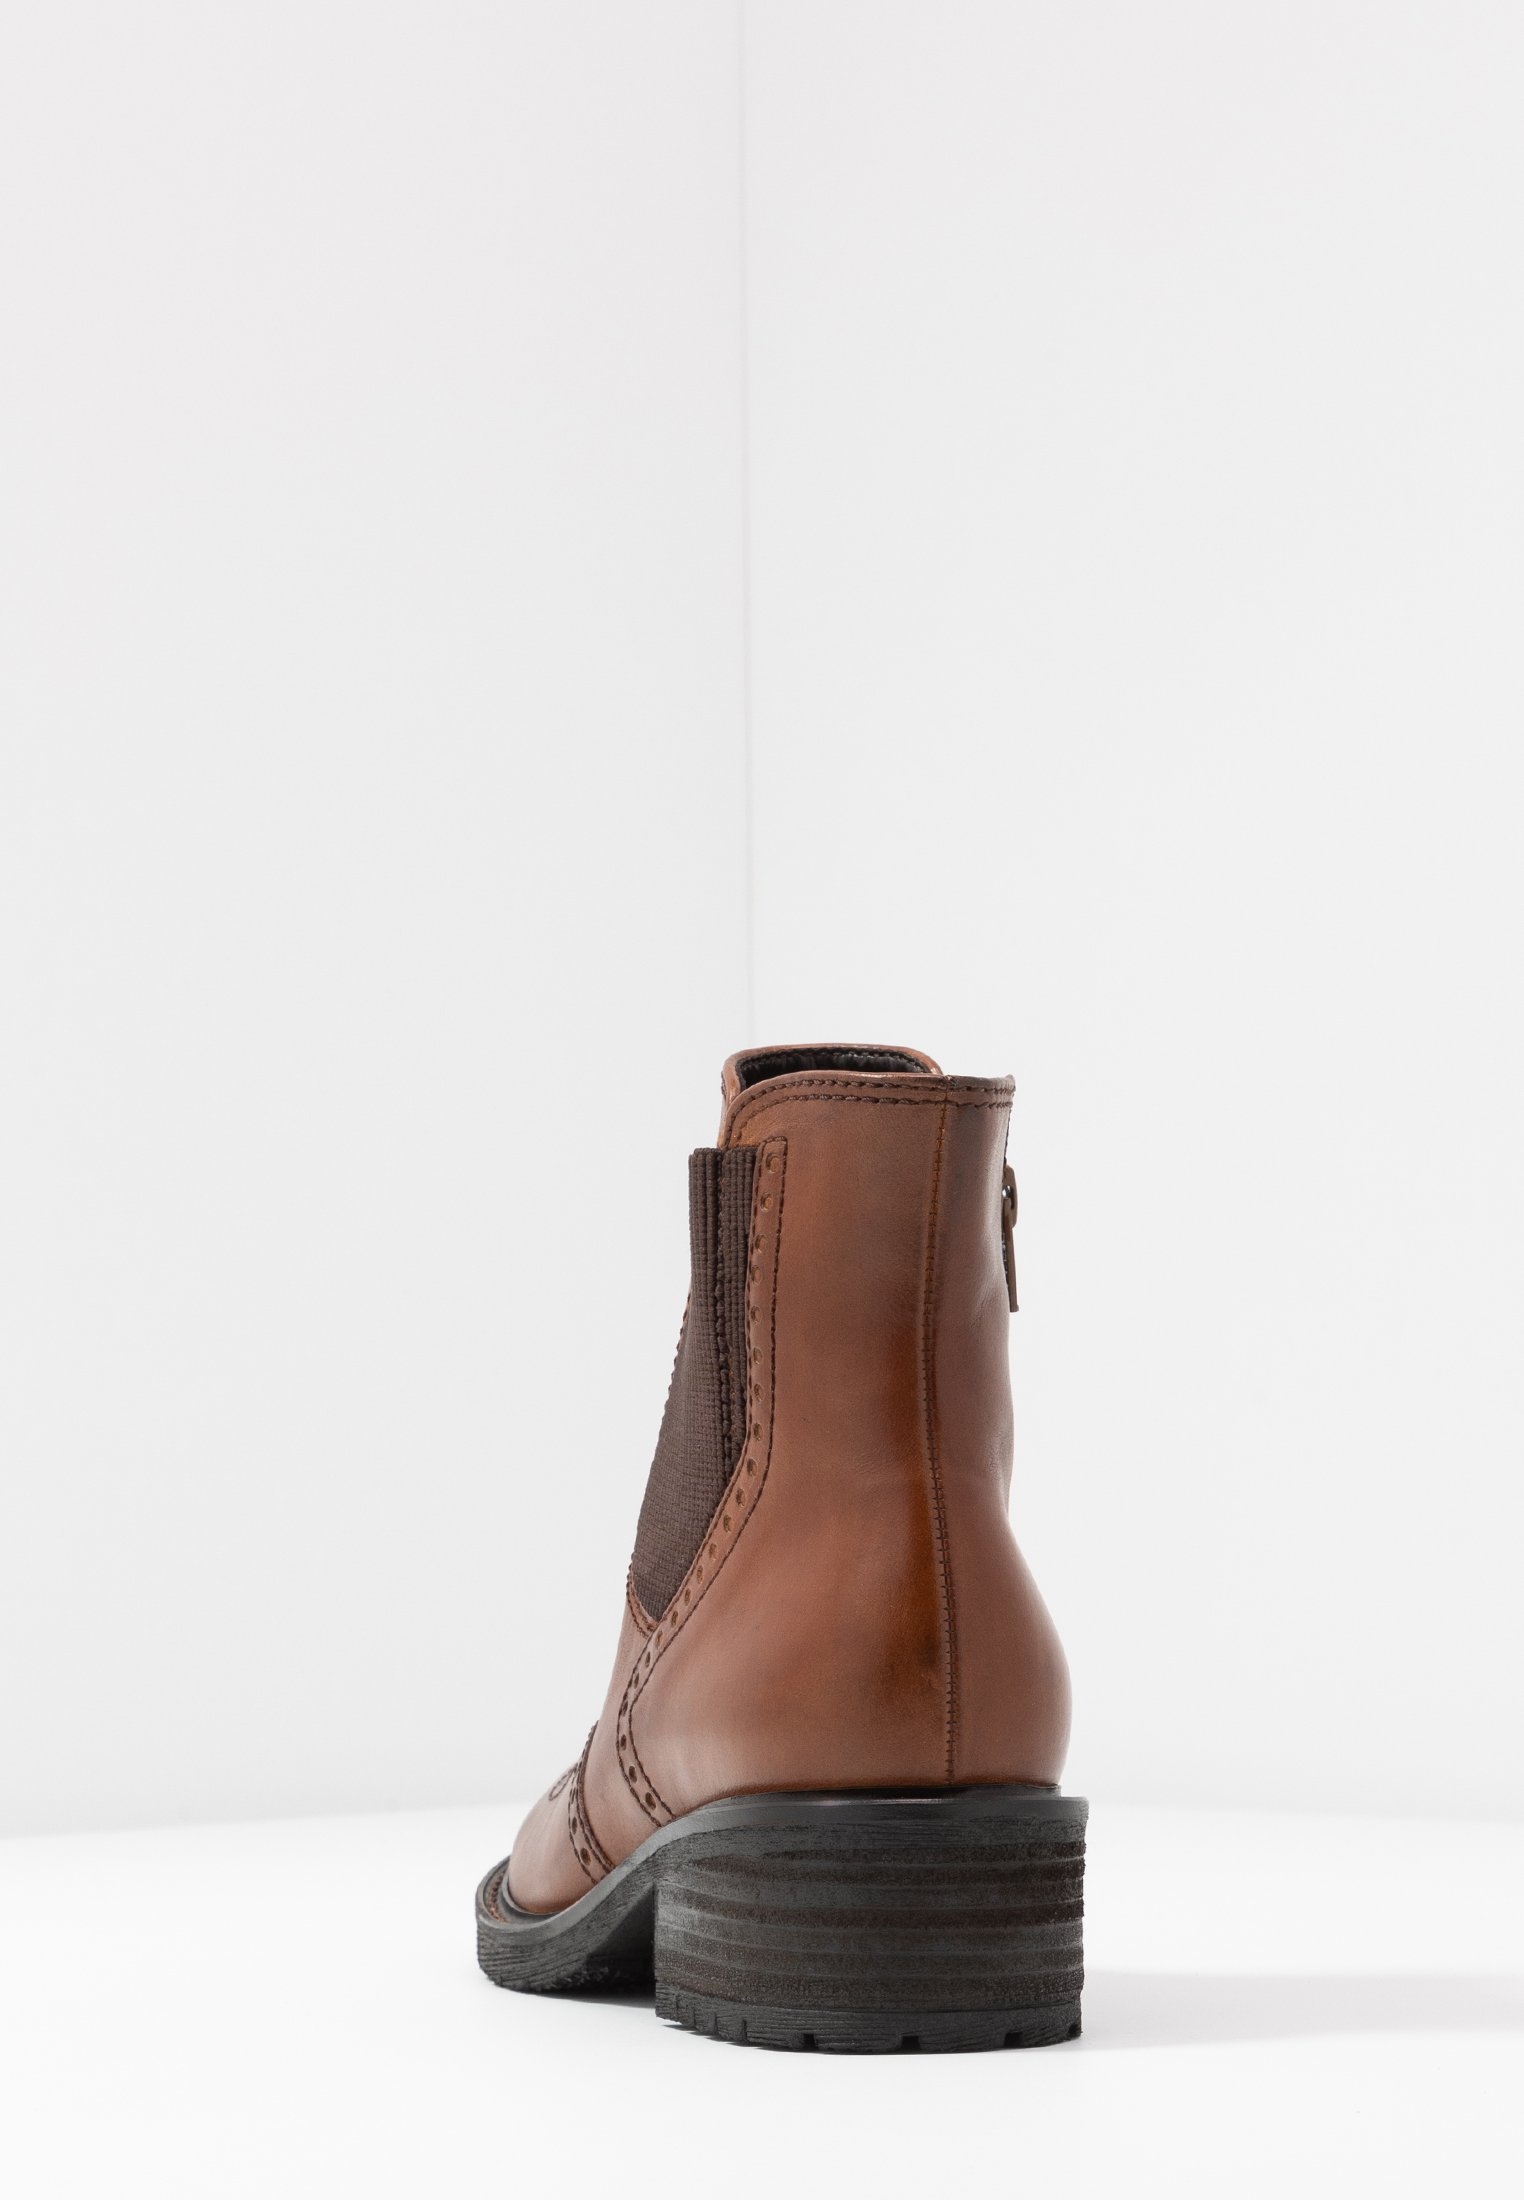 WIDE FIT Stiefelette whisky